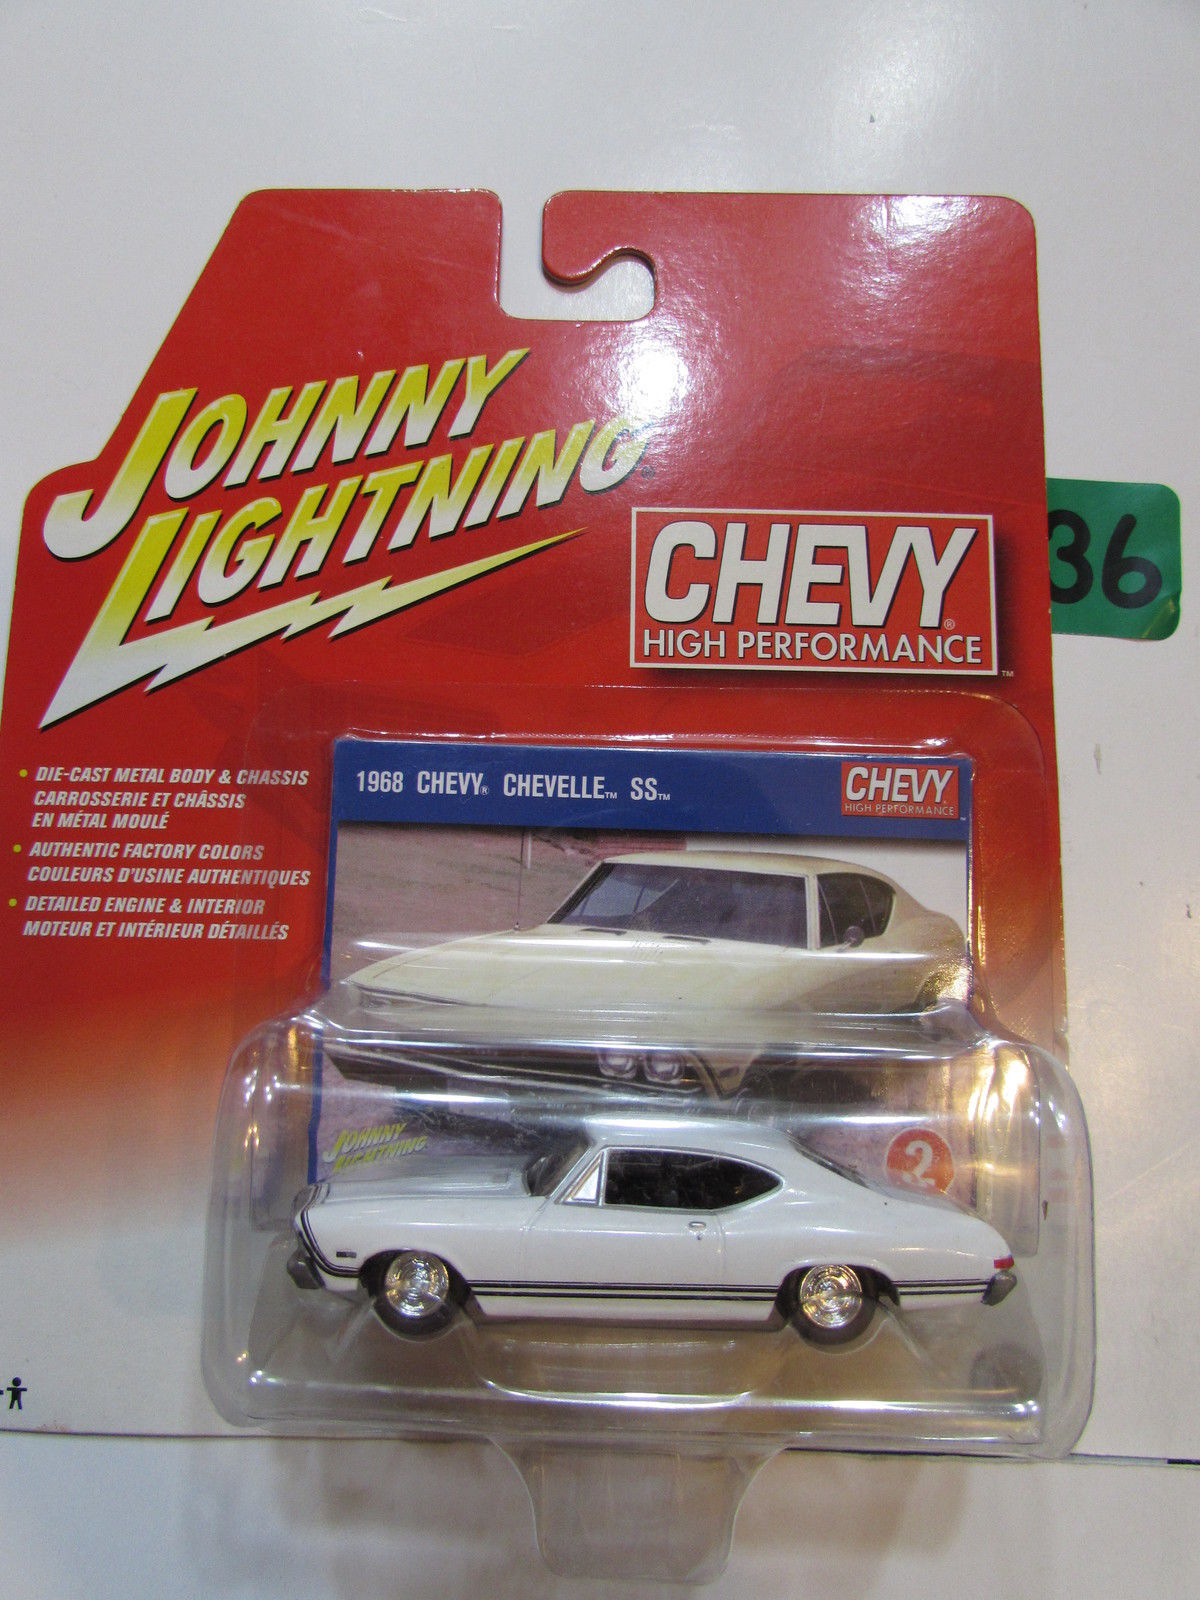 JOHNNY LIGHTNING CHEVY HIGH PERFORMANCE 1968 CHEVY CHEVELLE SS # 02